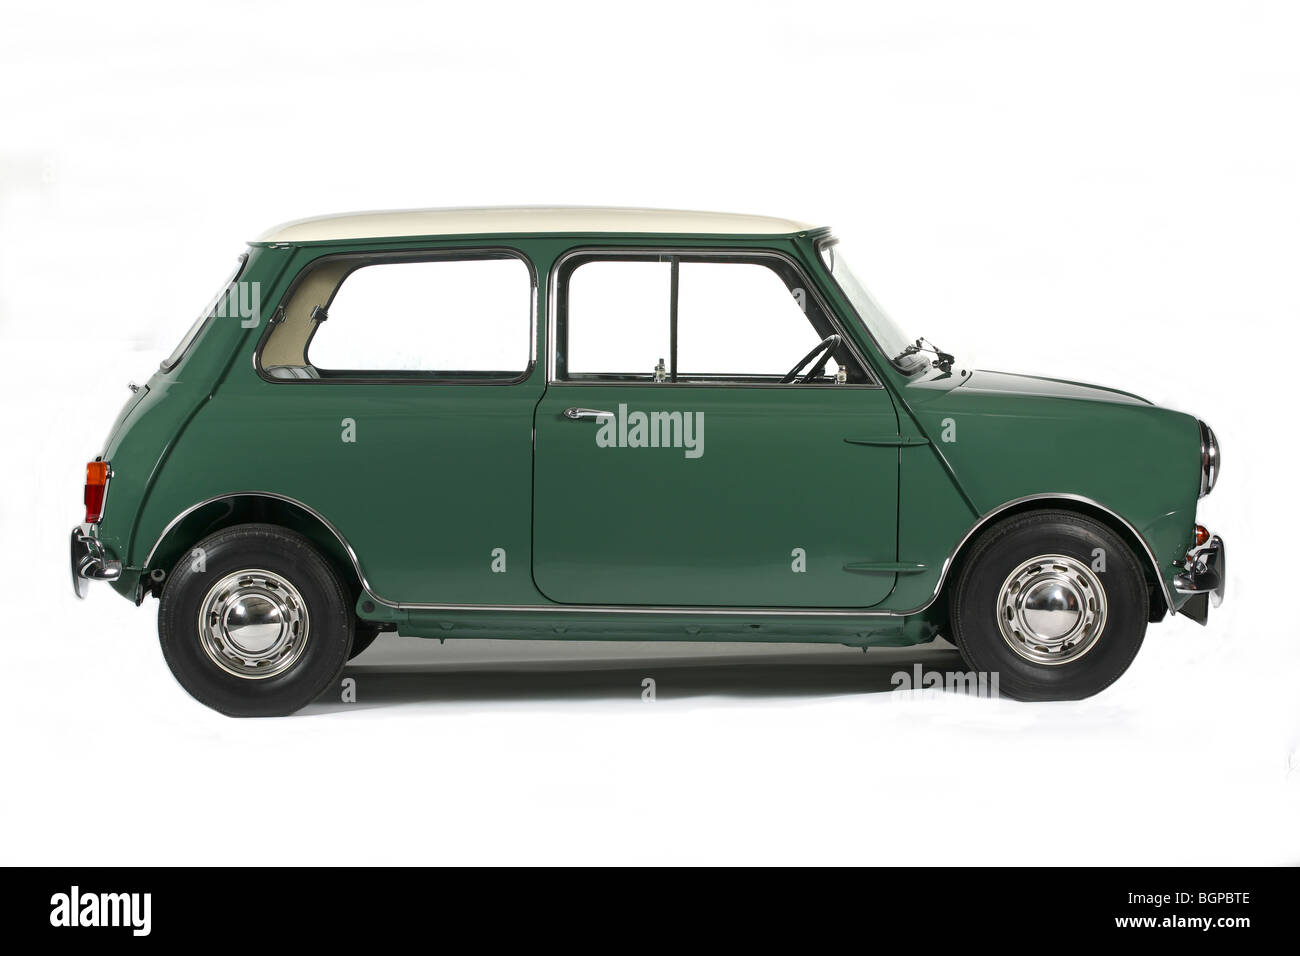 1960 green Mini Mk1 in profile photographed in the studio on a white background, designed by Sir Alec Issigonis - Stock Image